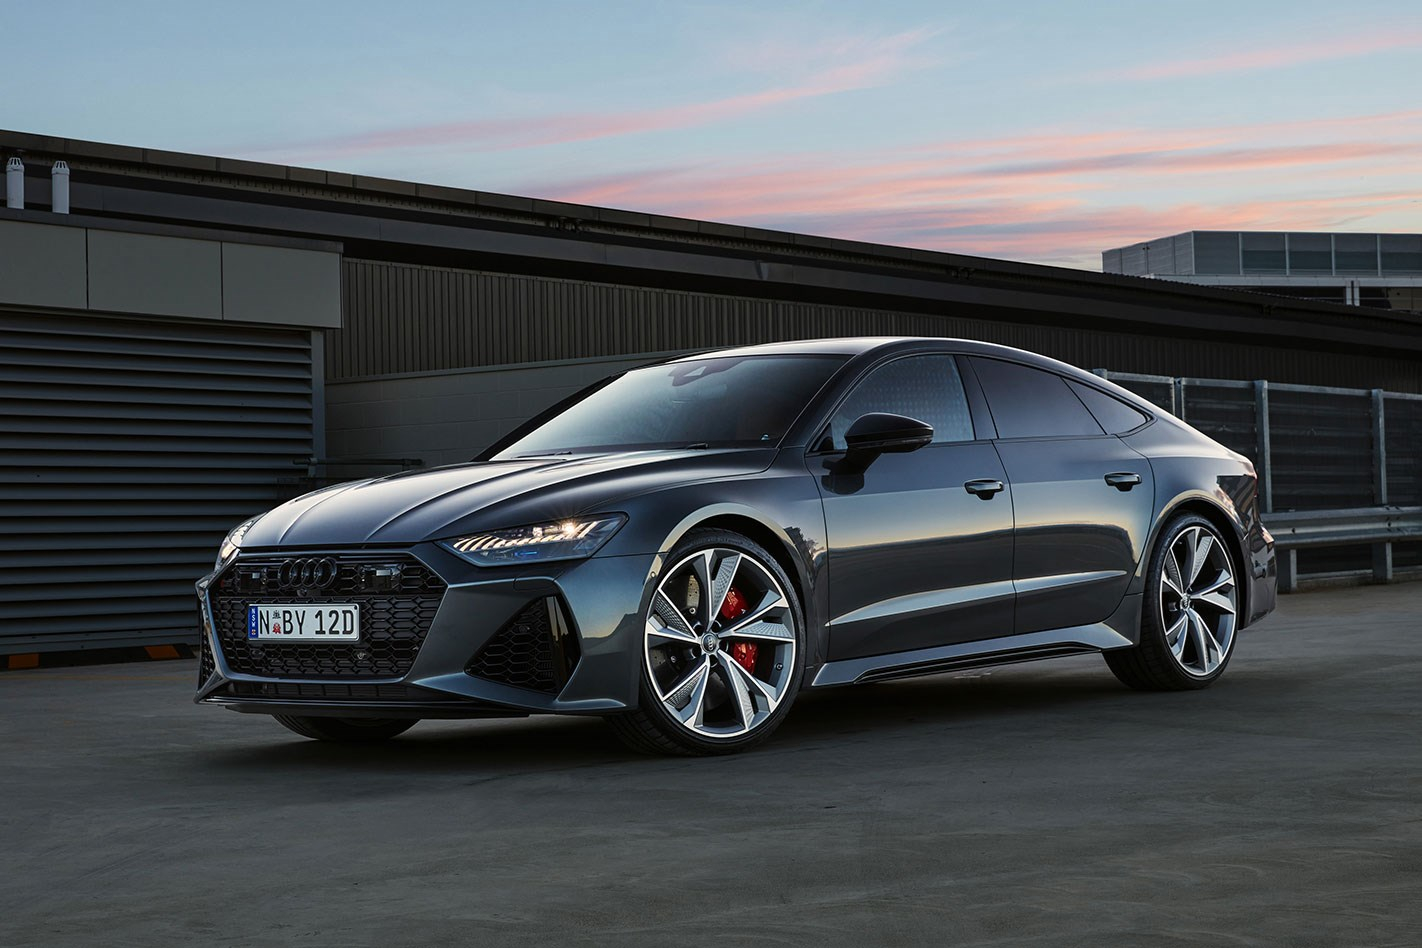 2021 Audi Rs7 Tfsi Quattro 4 0l 8cyl Petrol Turbocharged Automatic Hatchback